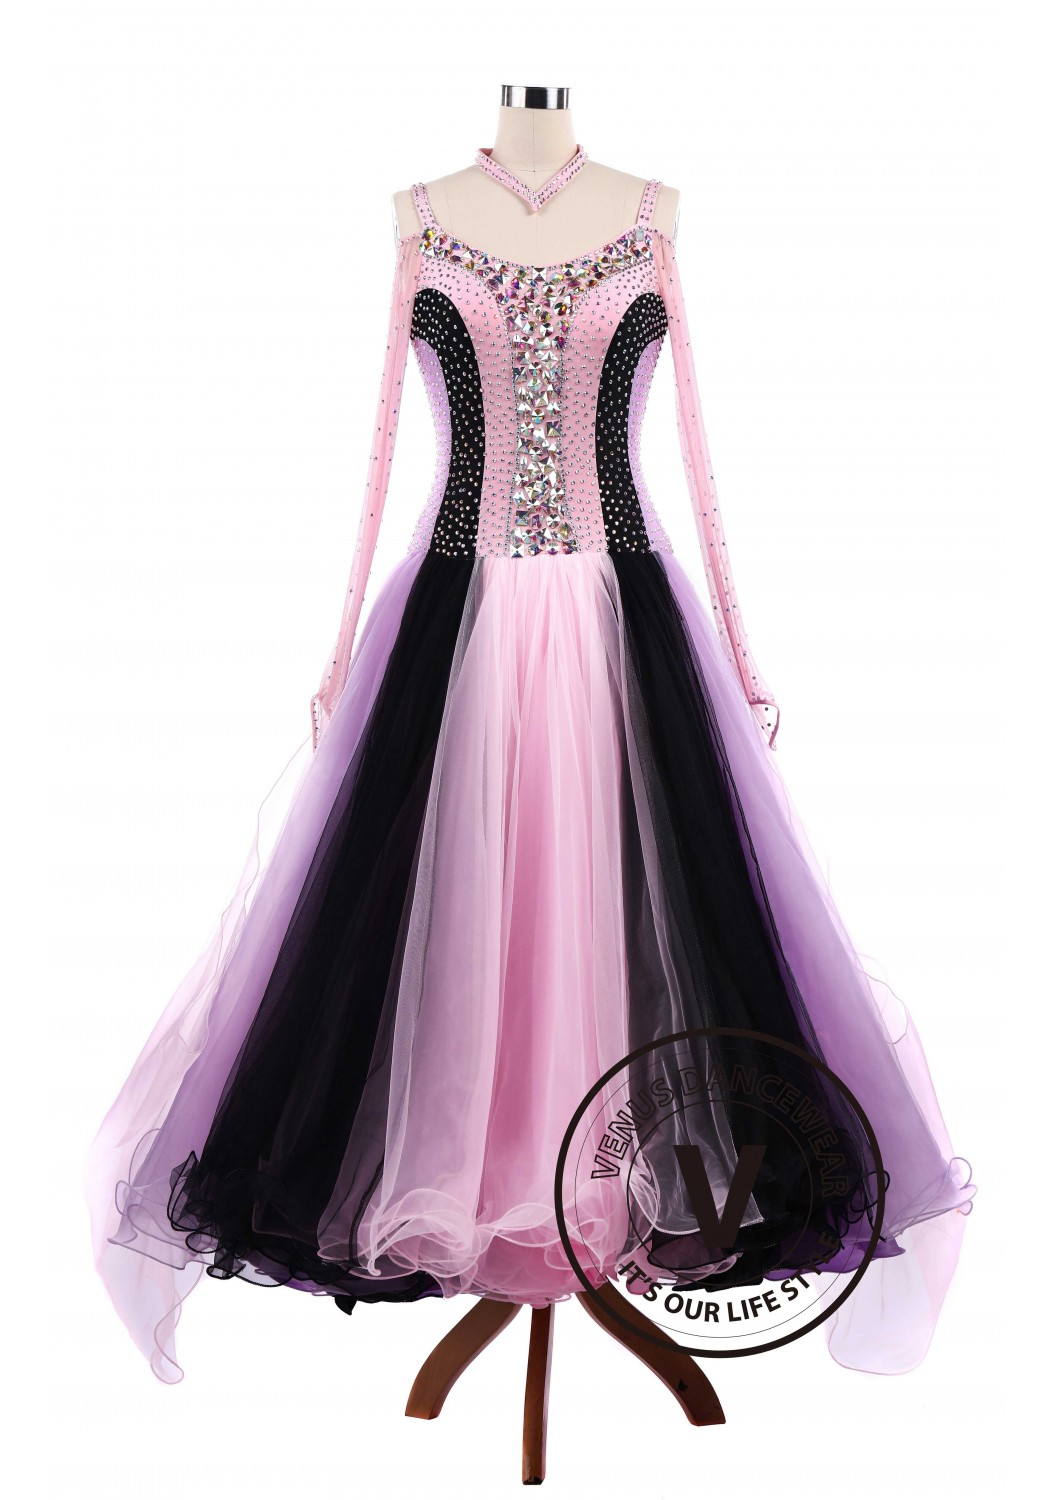 Pink Tricolore Standard Ballroom Tango Waltz Competition Dance Dress